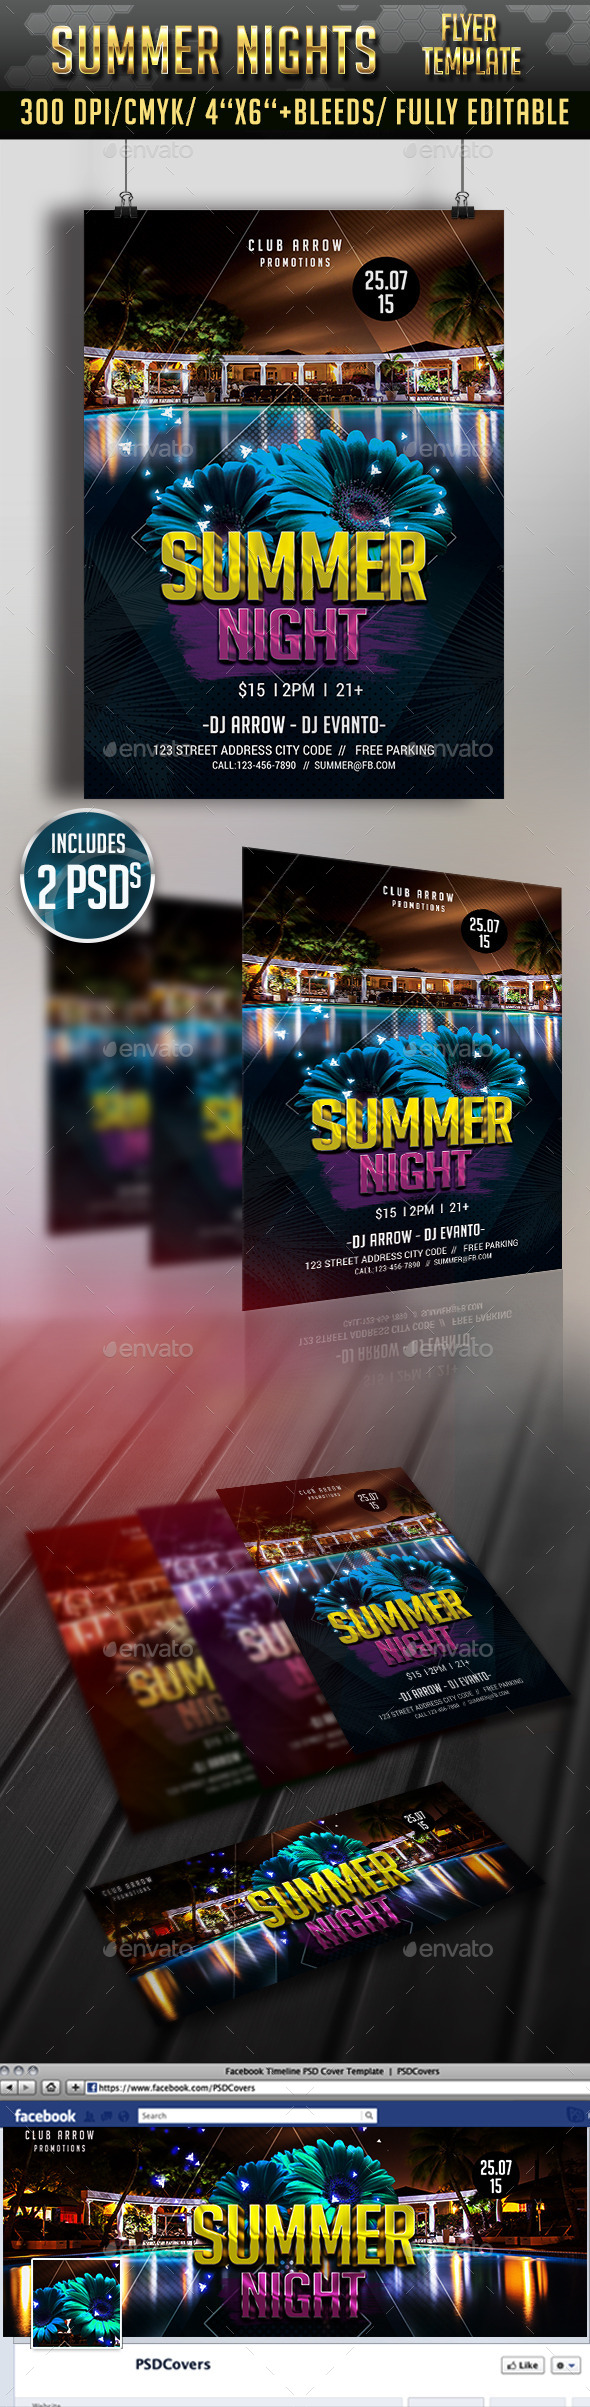 Summer Night Flyer and Facebook Cover - Clubs & Parties Events